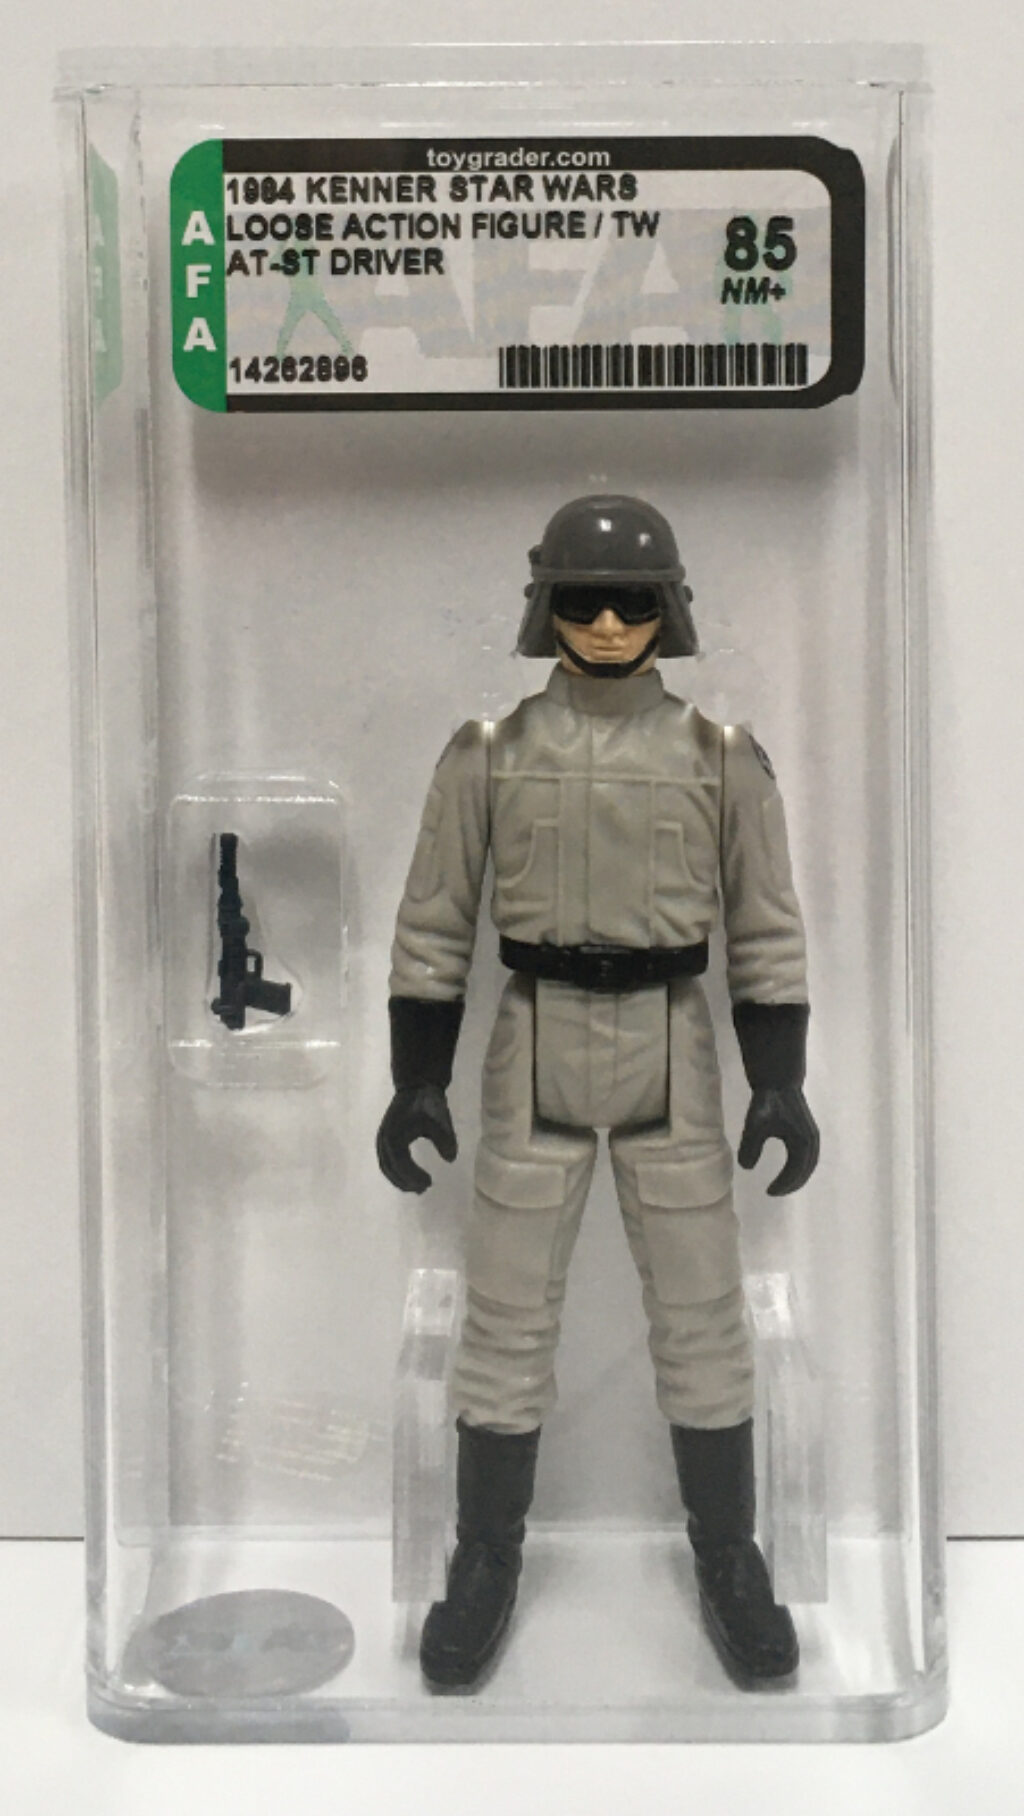 afa graded kenner star wars at-st driver 1